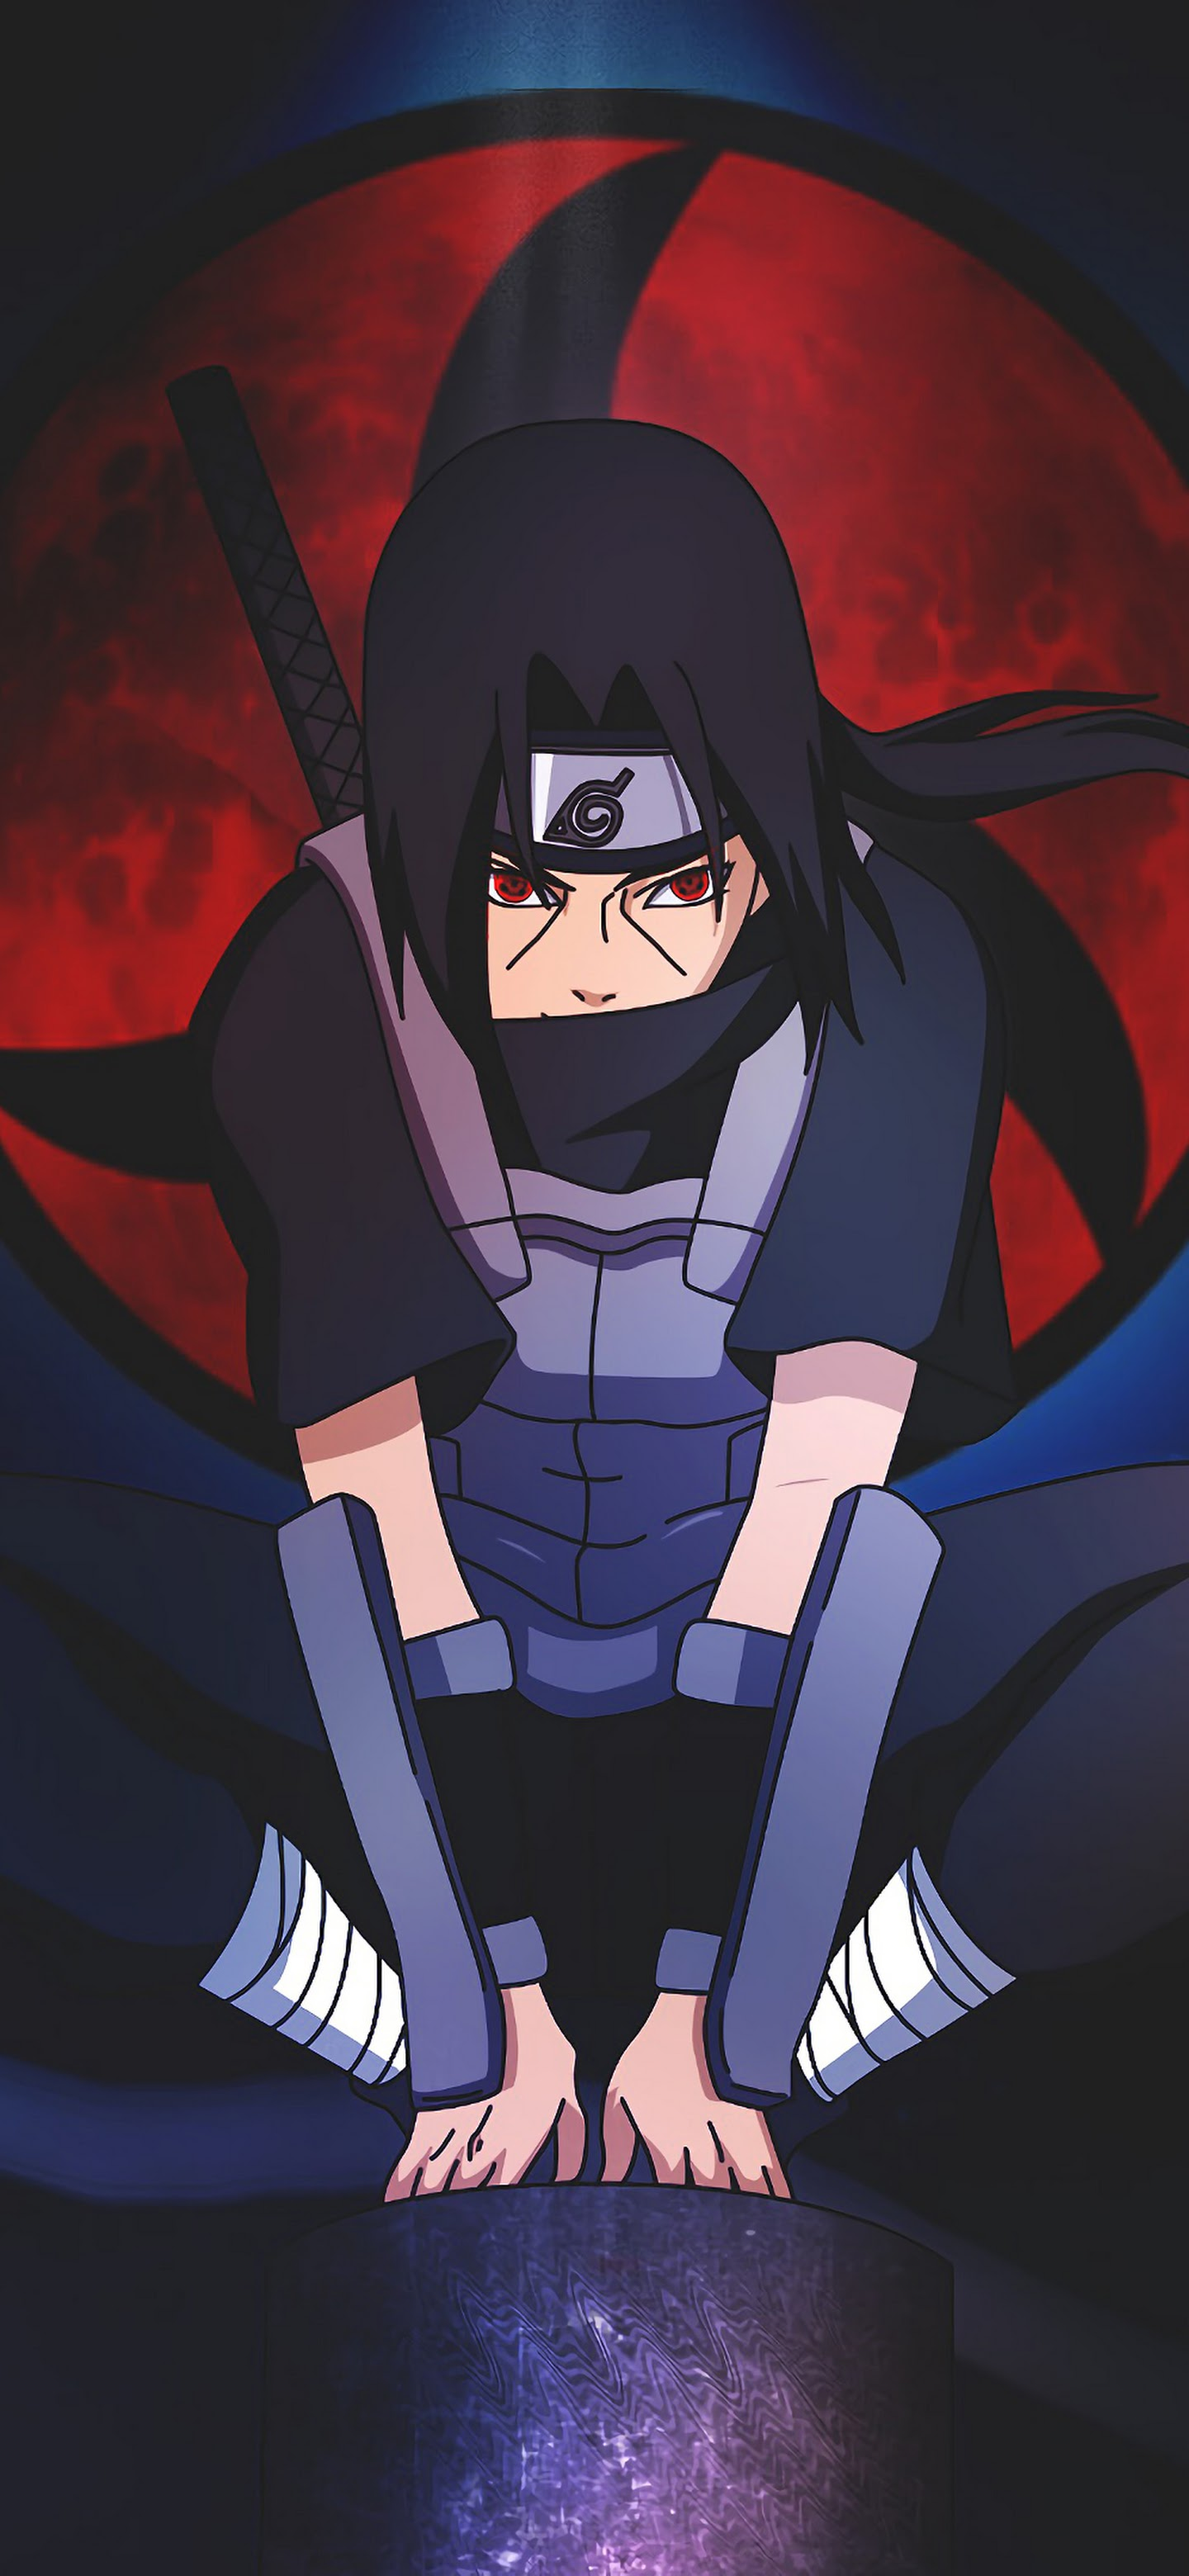 Itachi Sharingan Anbu 4K Wallpaper 6 1440x3120